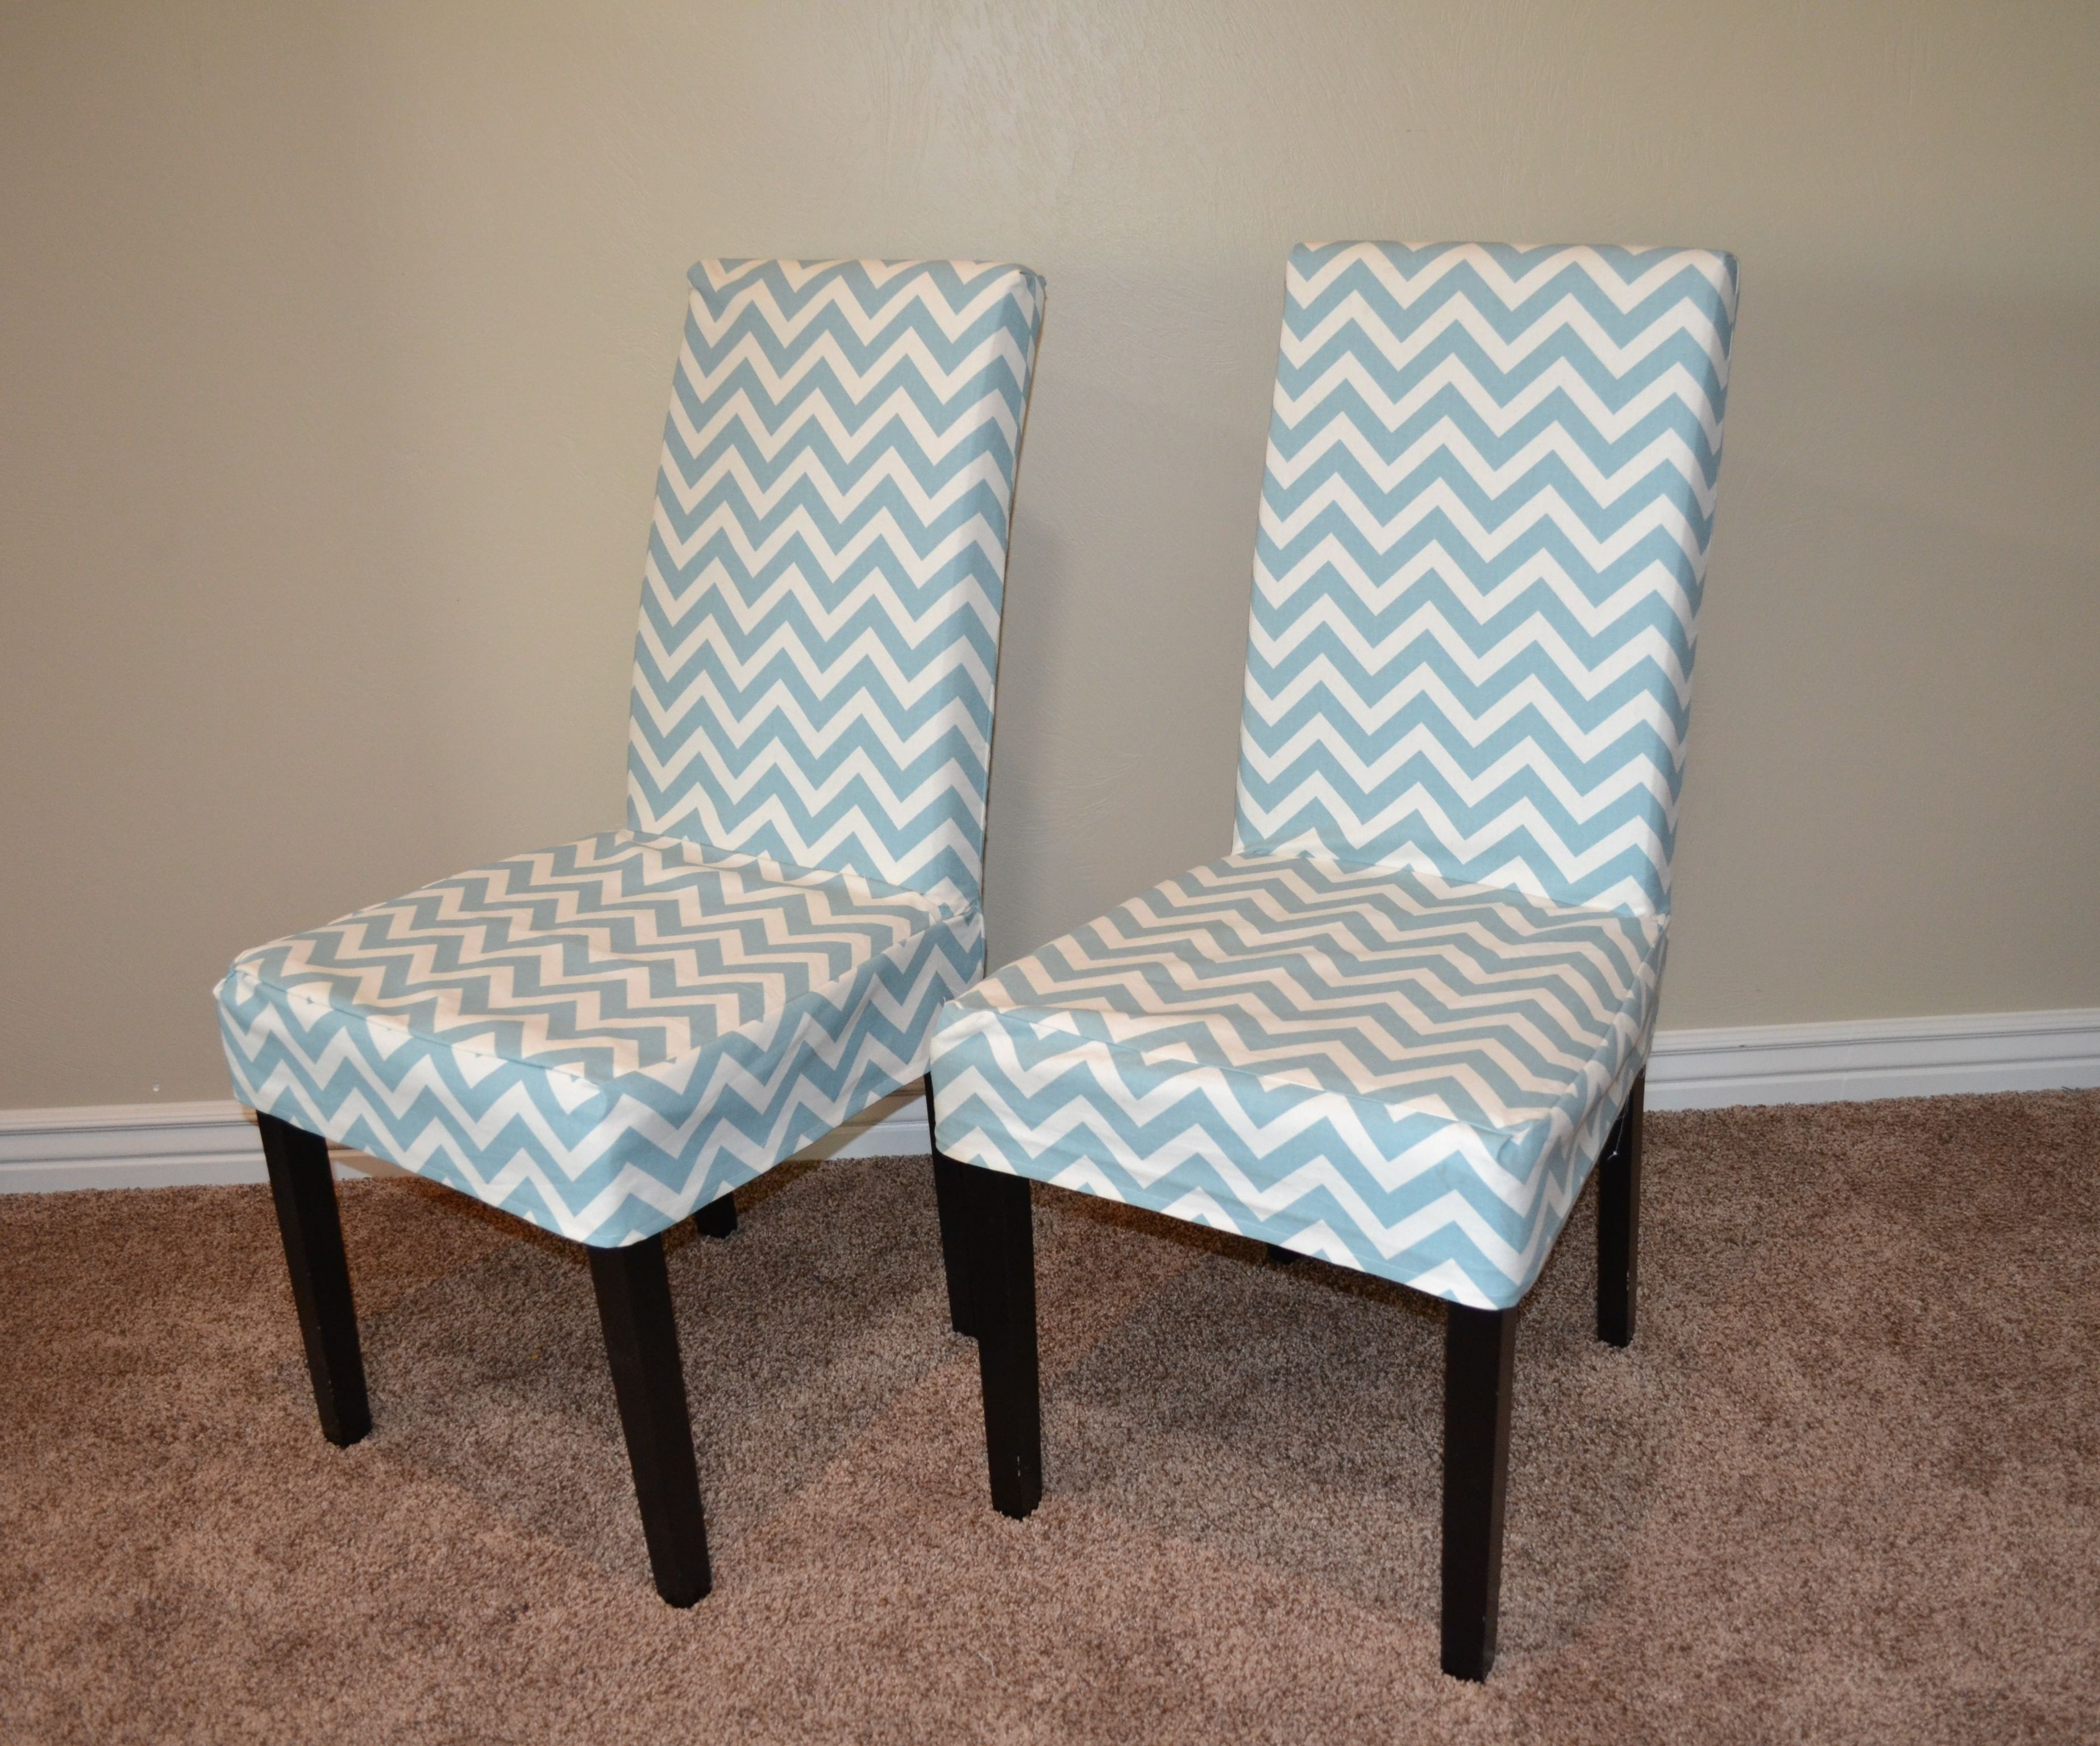 Black And White Chevron Chair Covers images